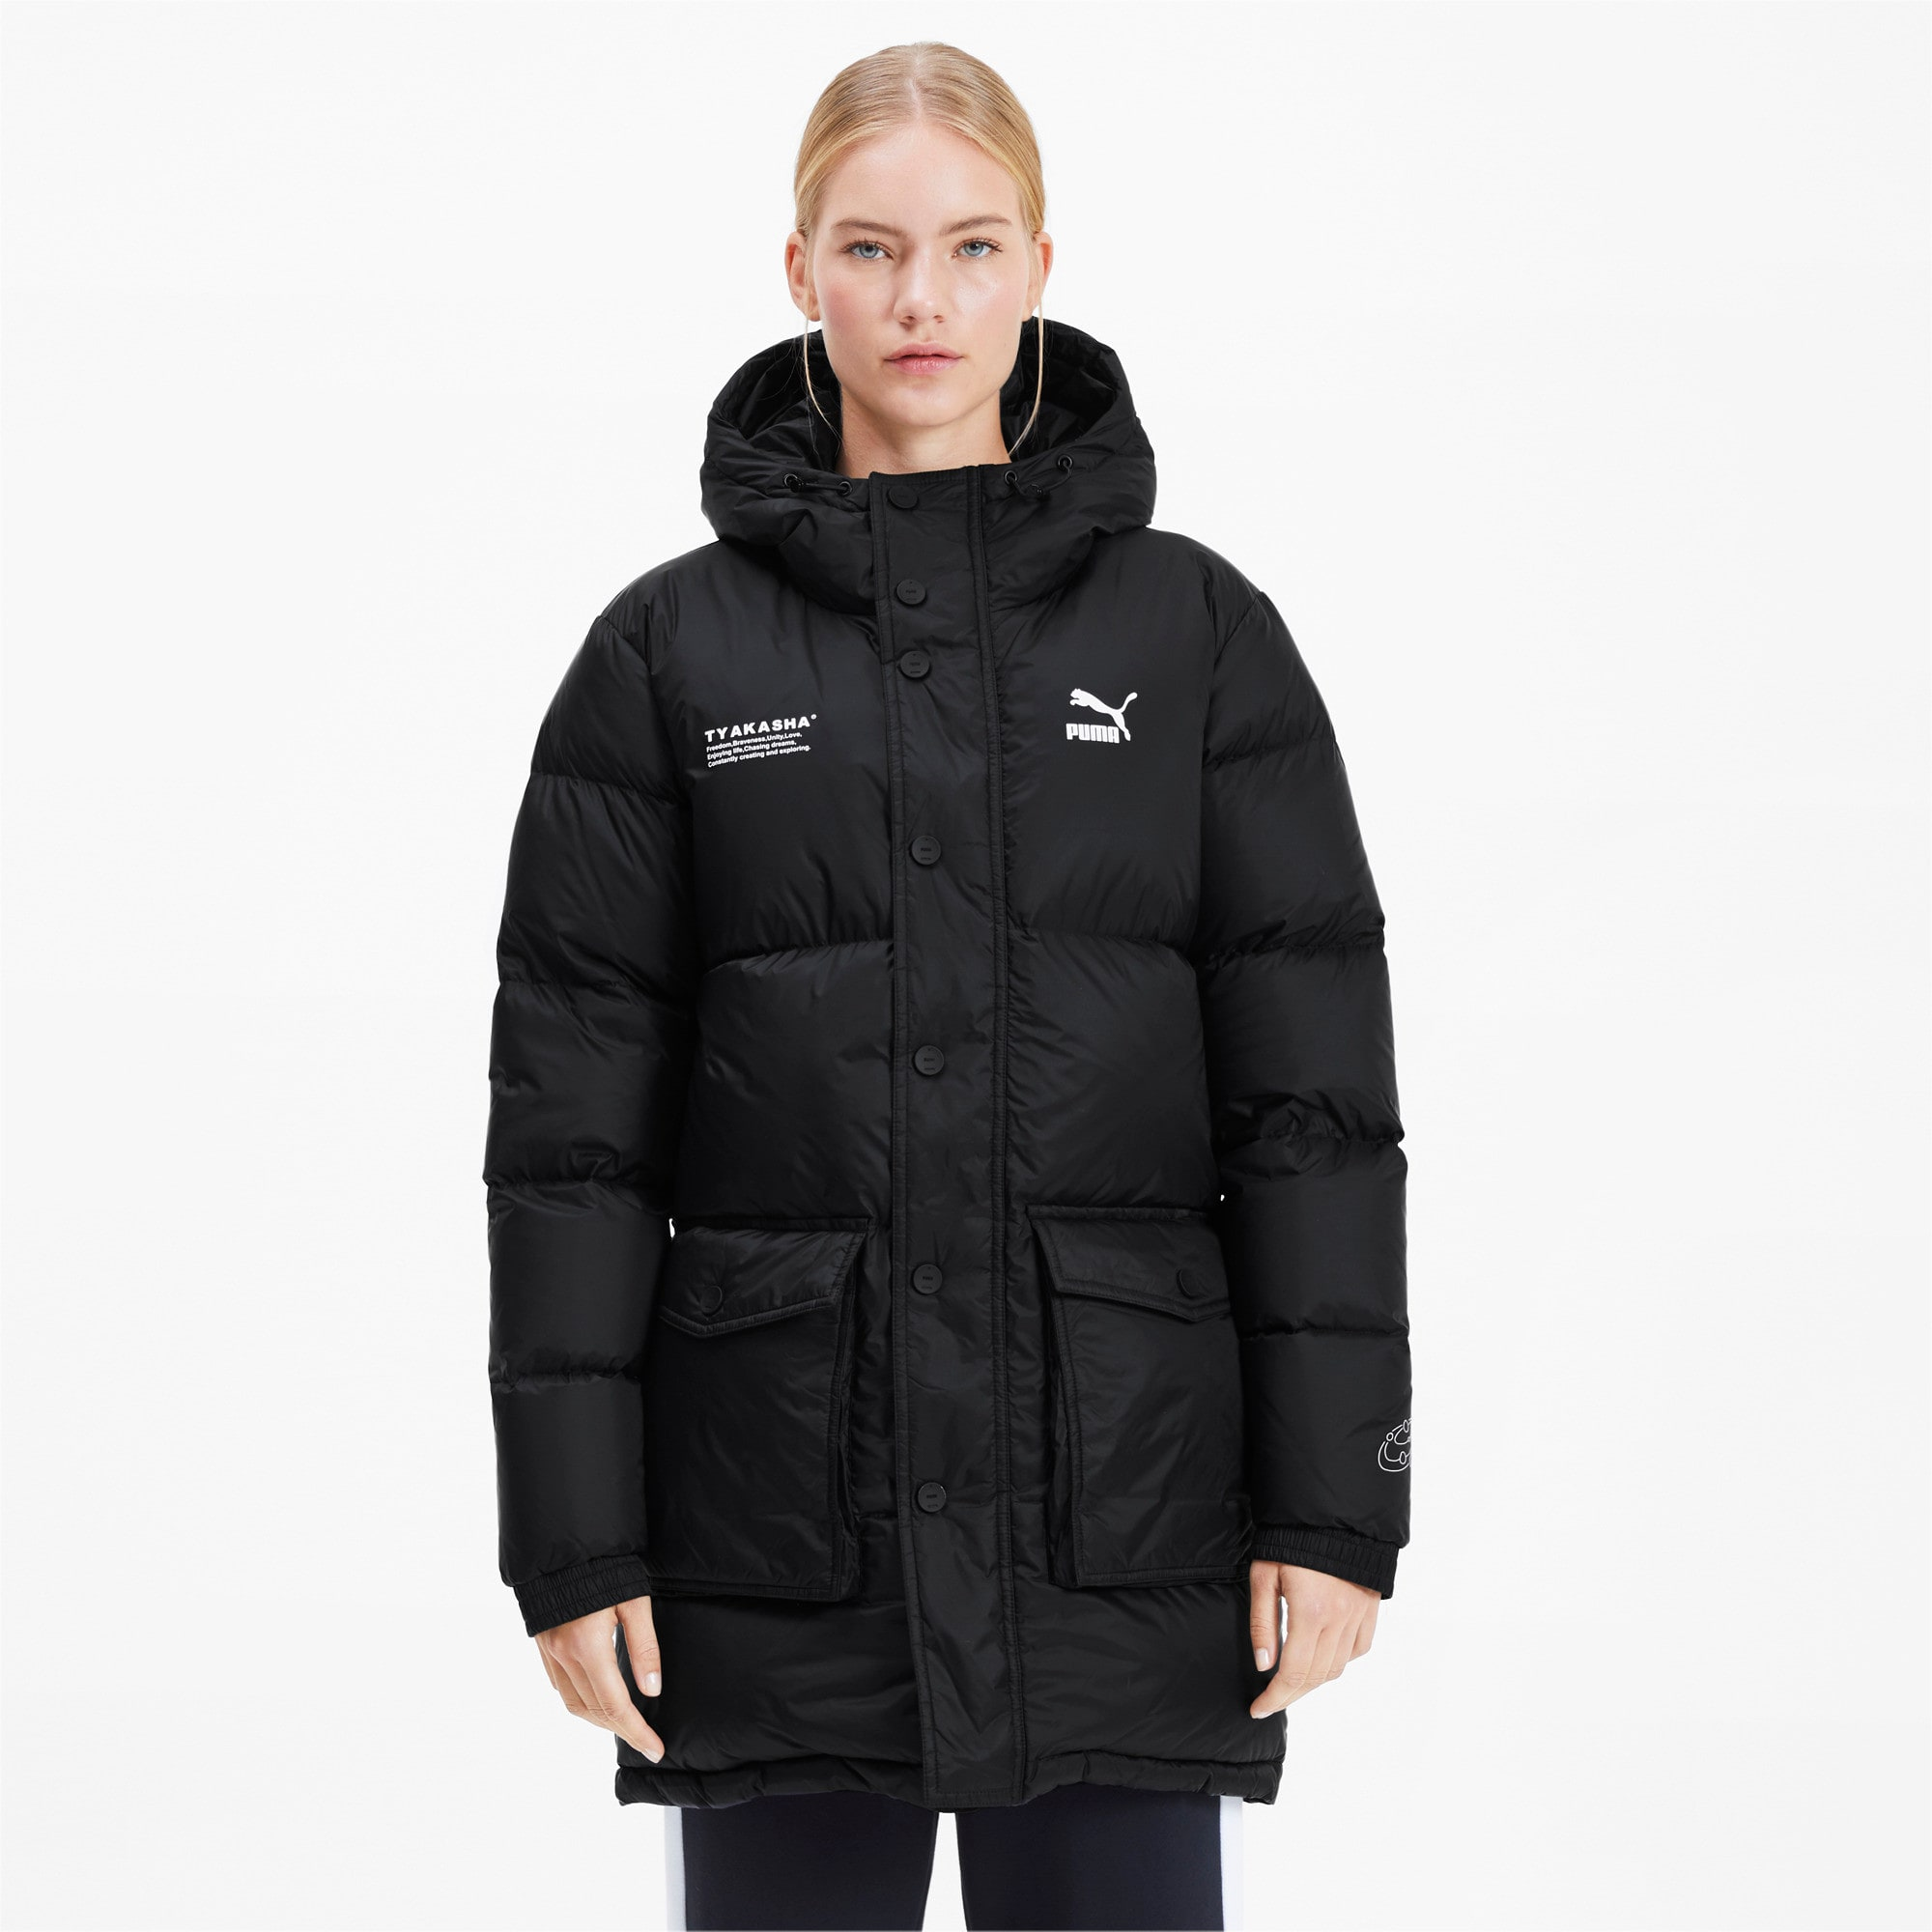 Thumbnail 2 of PUMA x TYAKASHA Woven Down Parka, Puma Black, medium